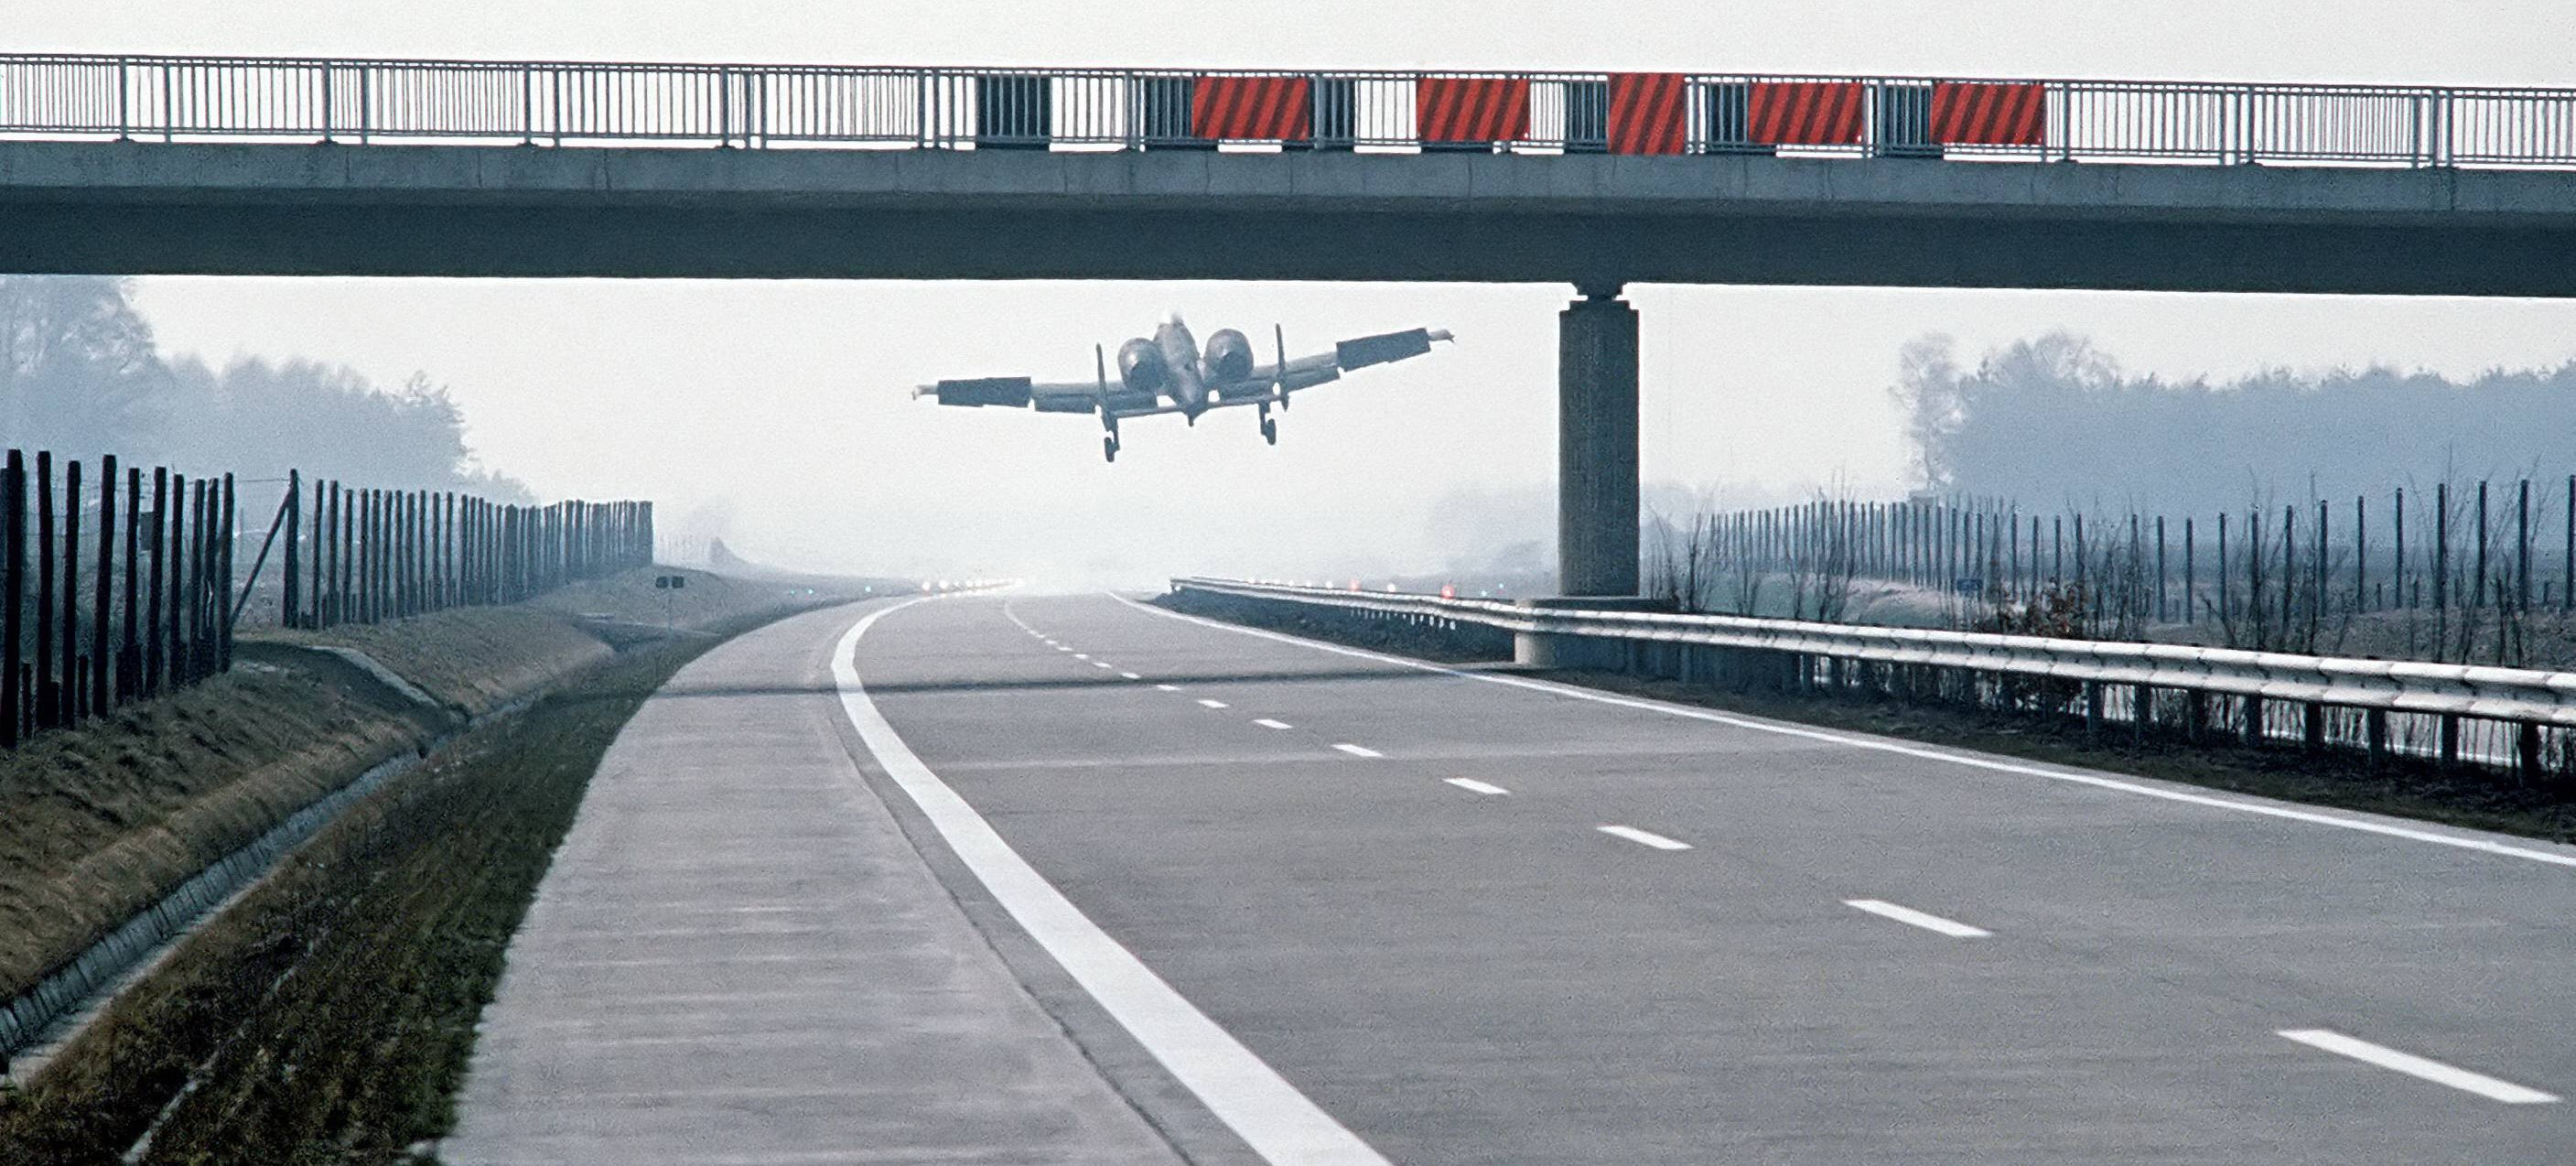 A-10 Thunderbolt attack jet lands on German highway